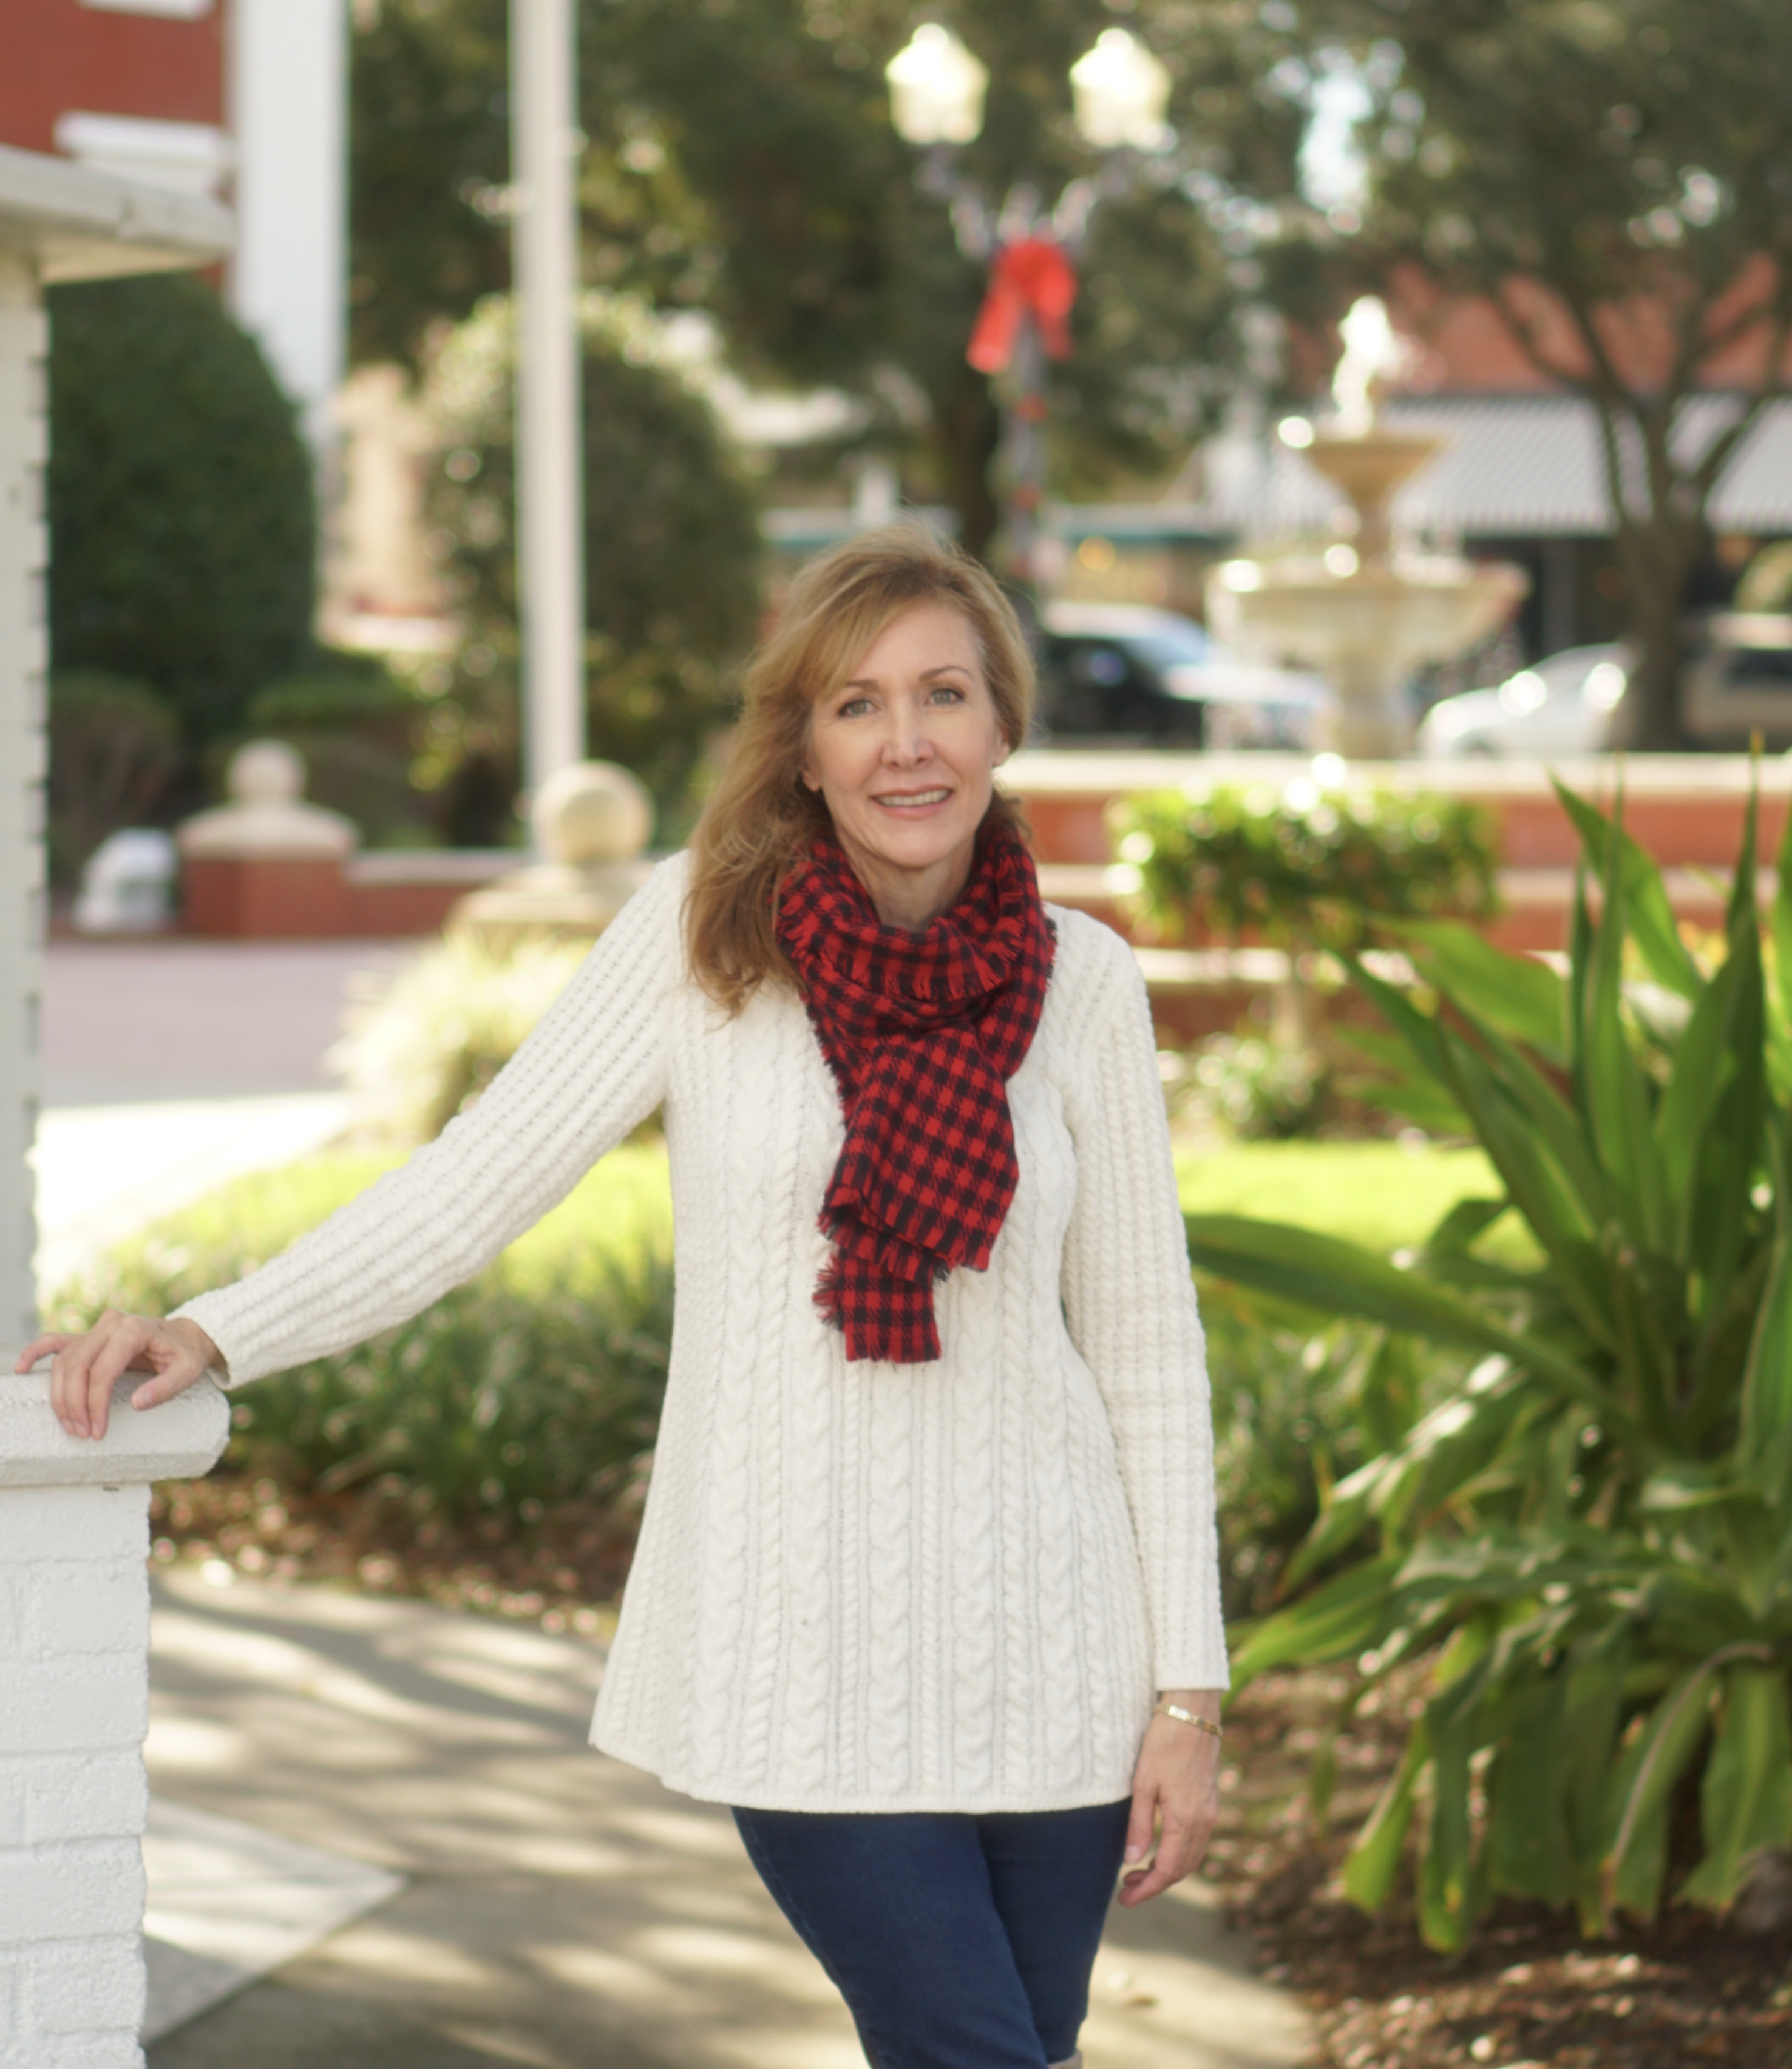 Look super cute shopping in J.Jill Sweater and Scarf